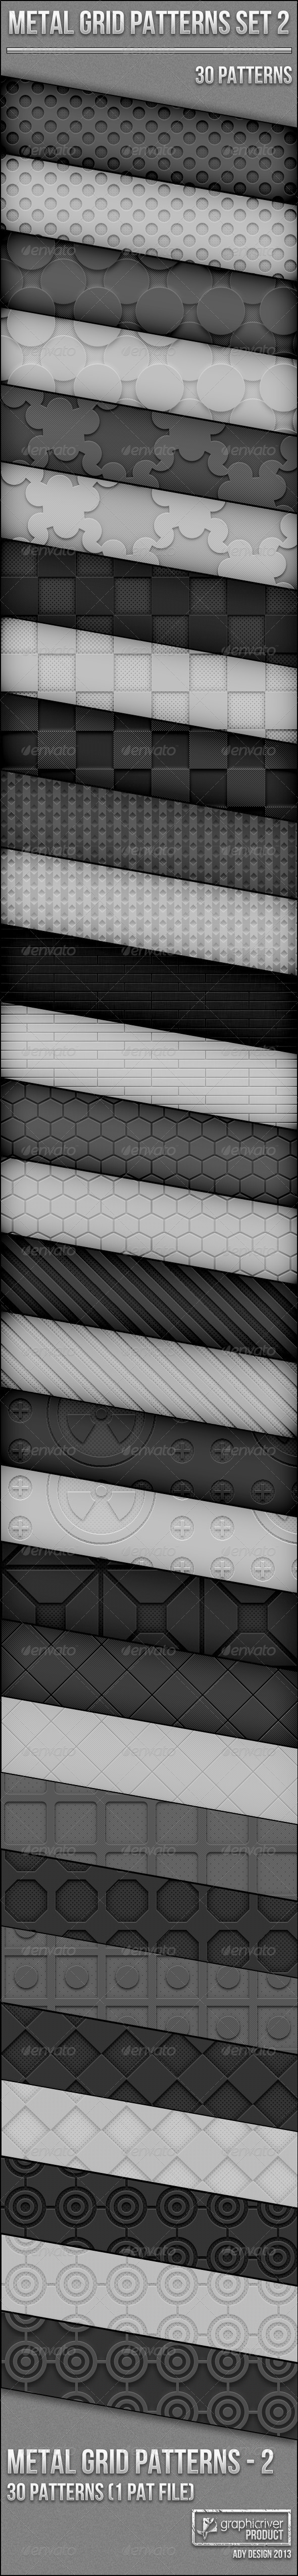 Metal Grid Patterns Set 2 - Techno / Futuristic Textures / Fills / Patterns